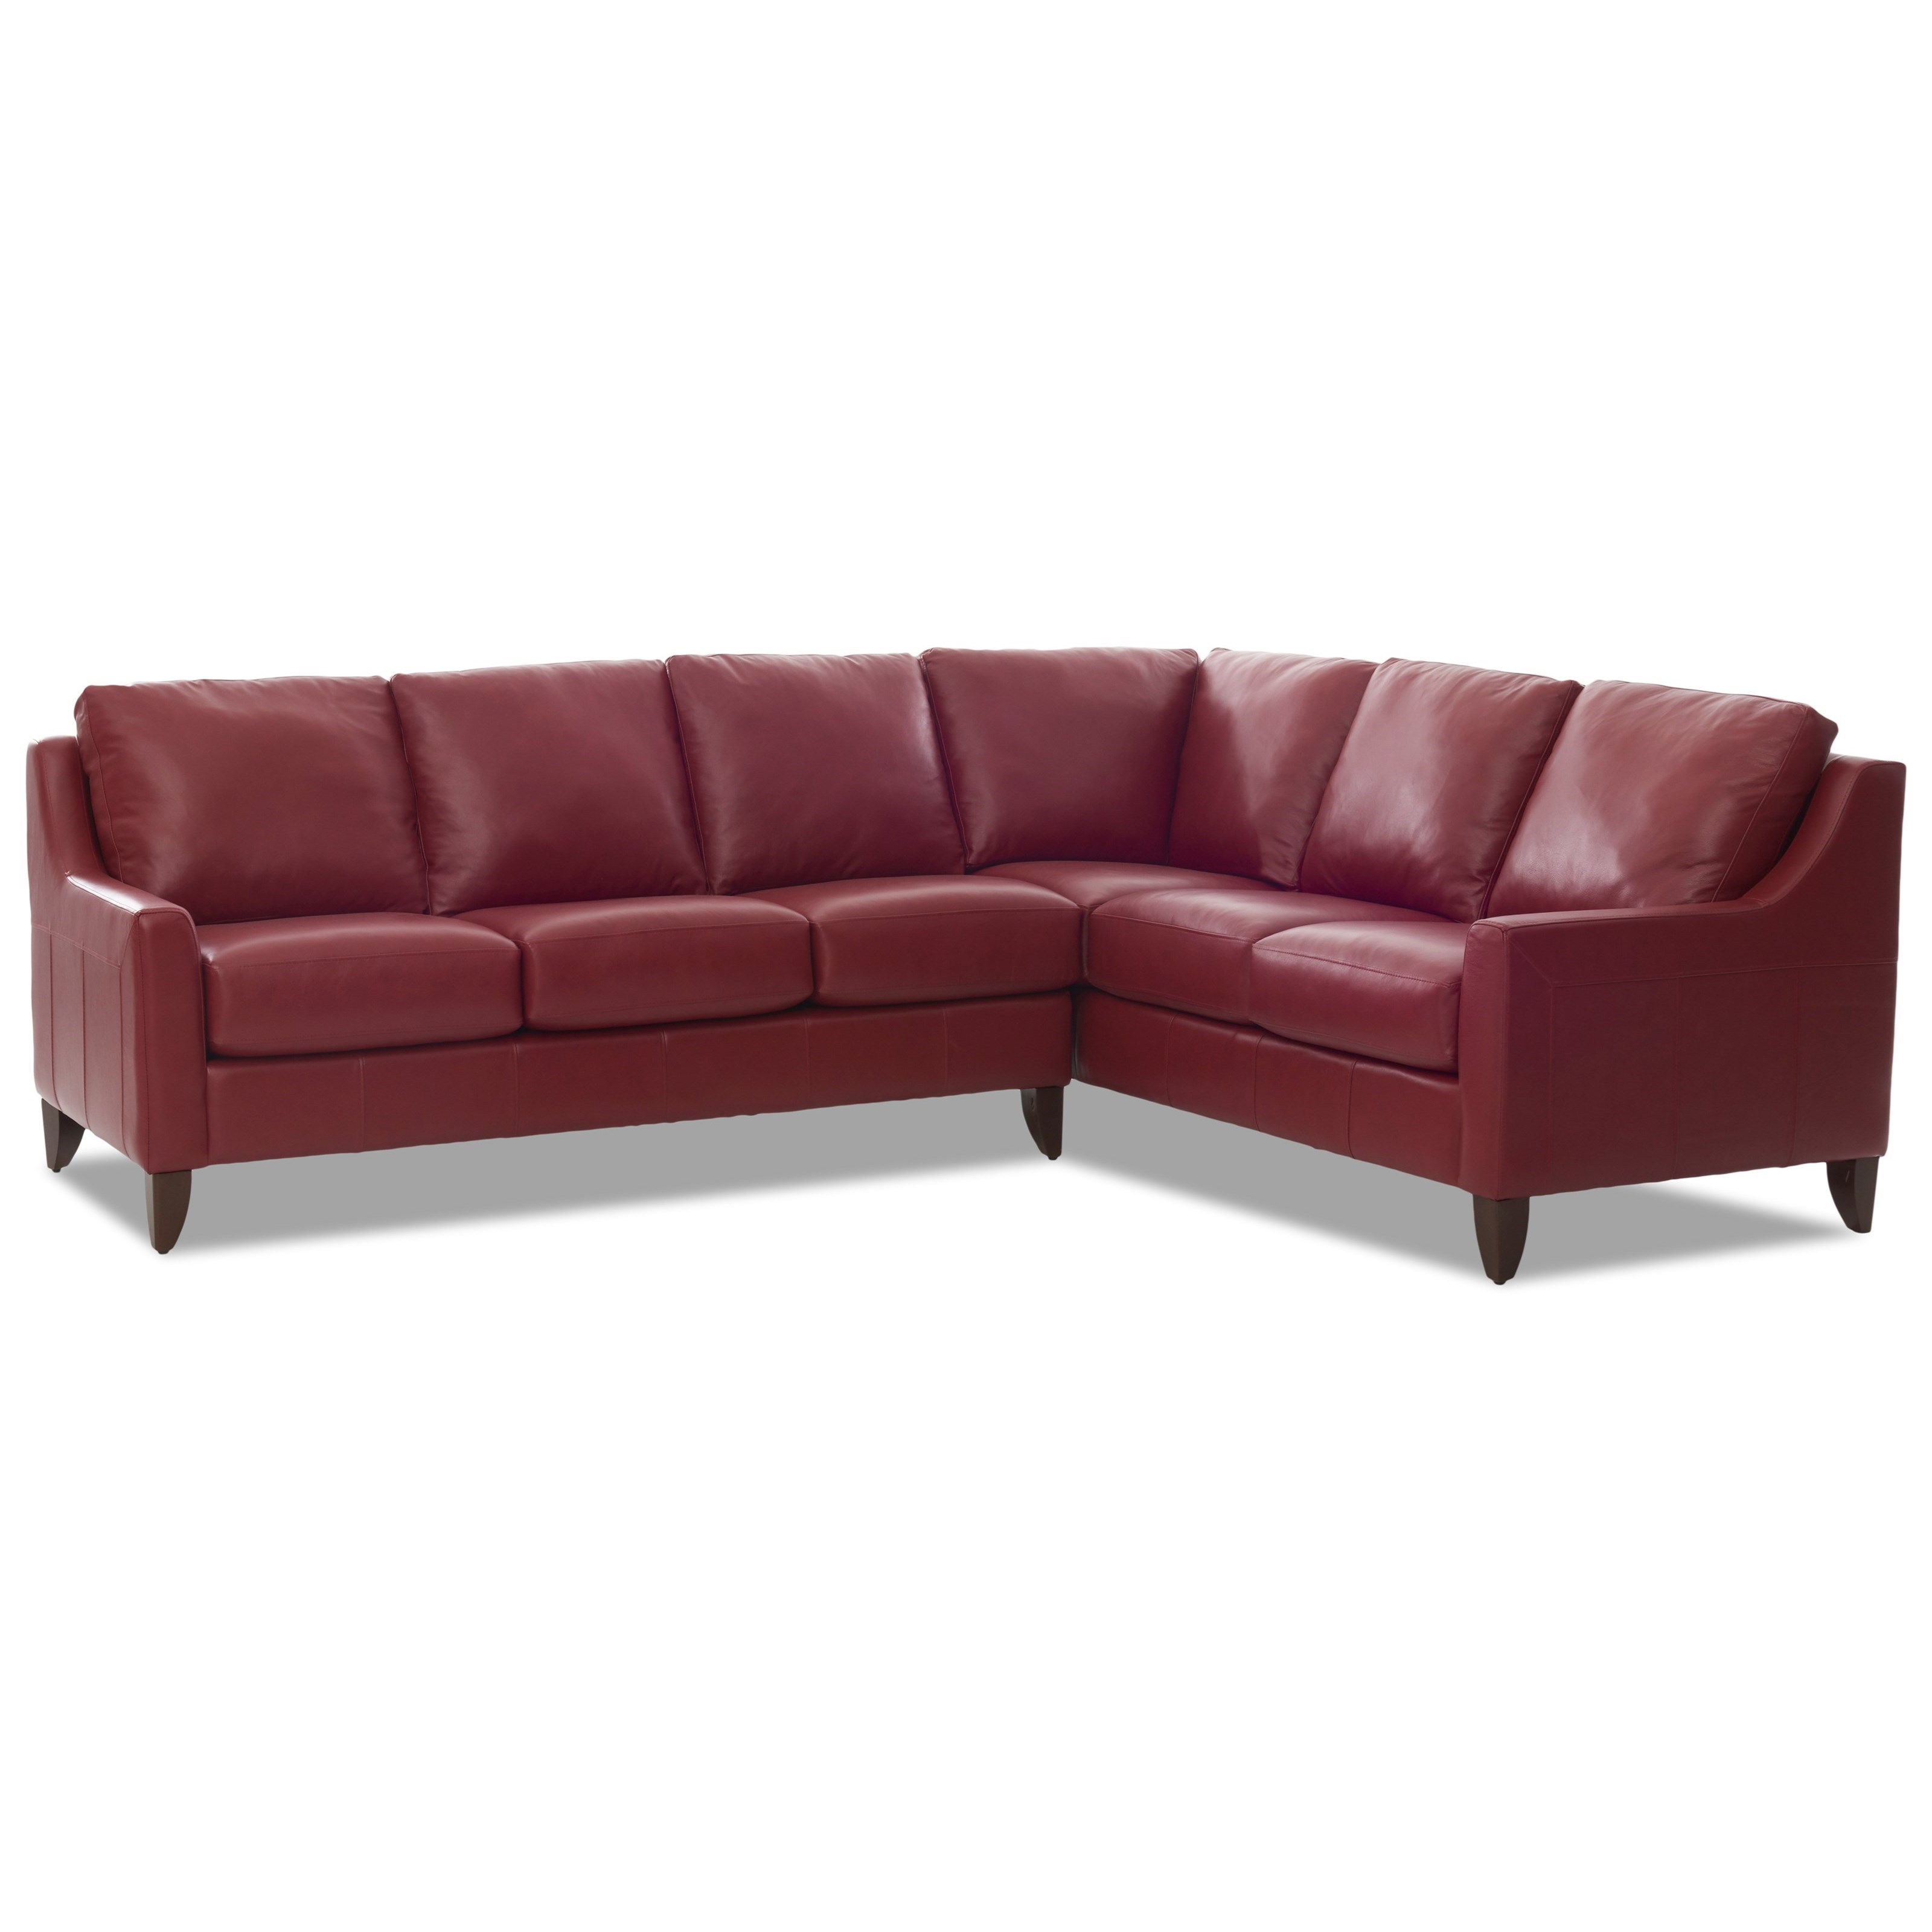 Casual 5 Seat Sectional with Track Arms by Klaussner | Wolf Furniture